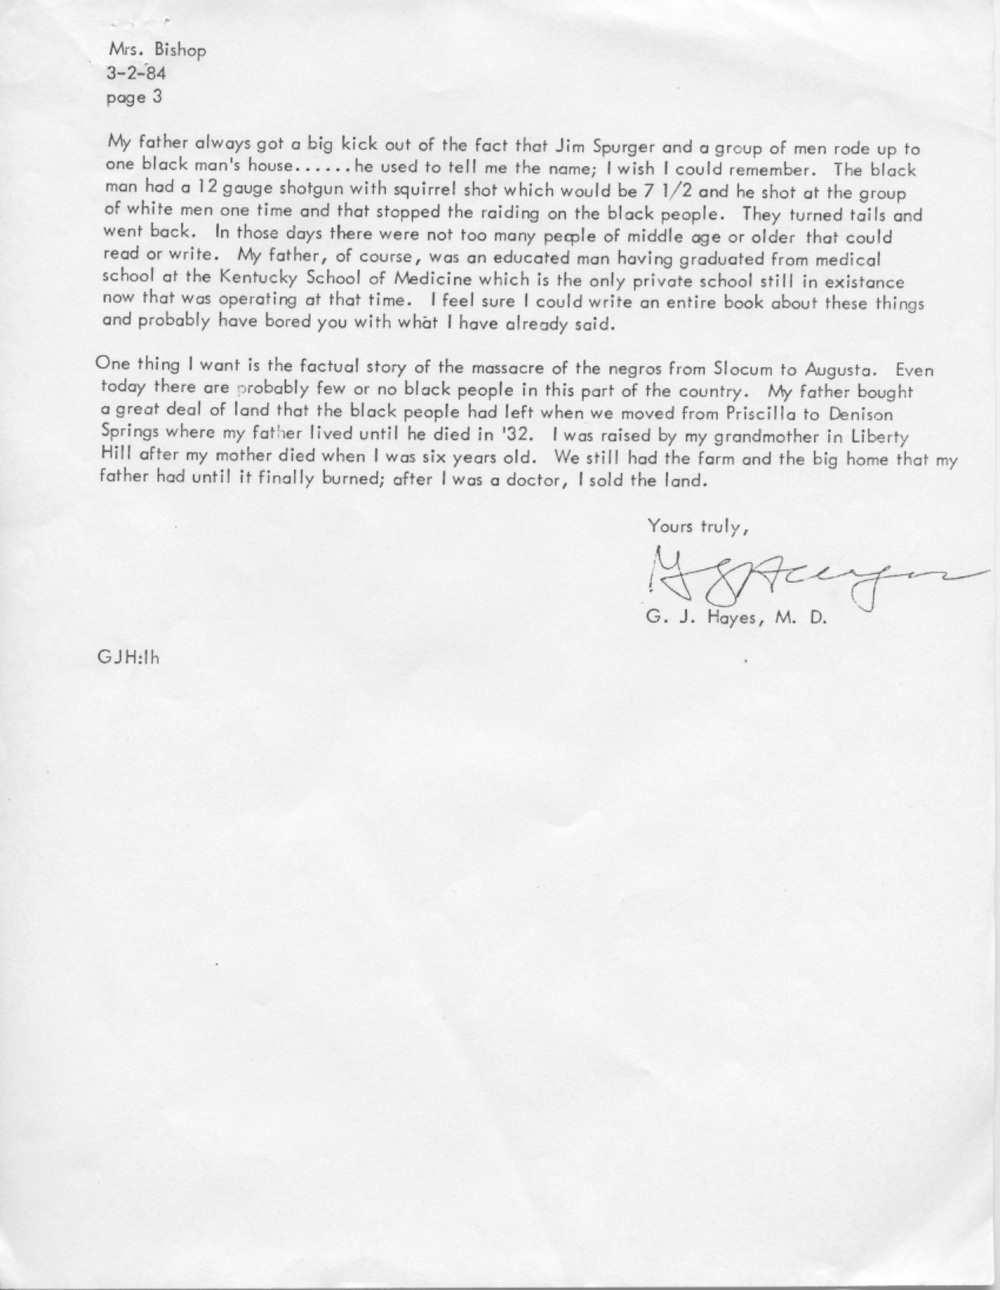 Dr. G.J. Hayes, Letter to Mrs. Eliza H. Bishop, March 2, 1984 (Page 3) (Houston County Historical Commission)